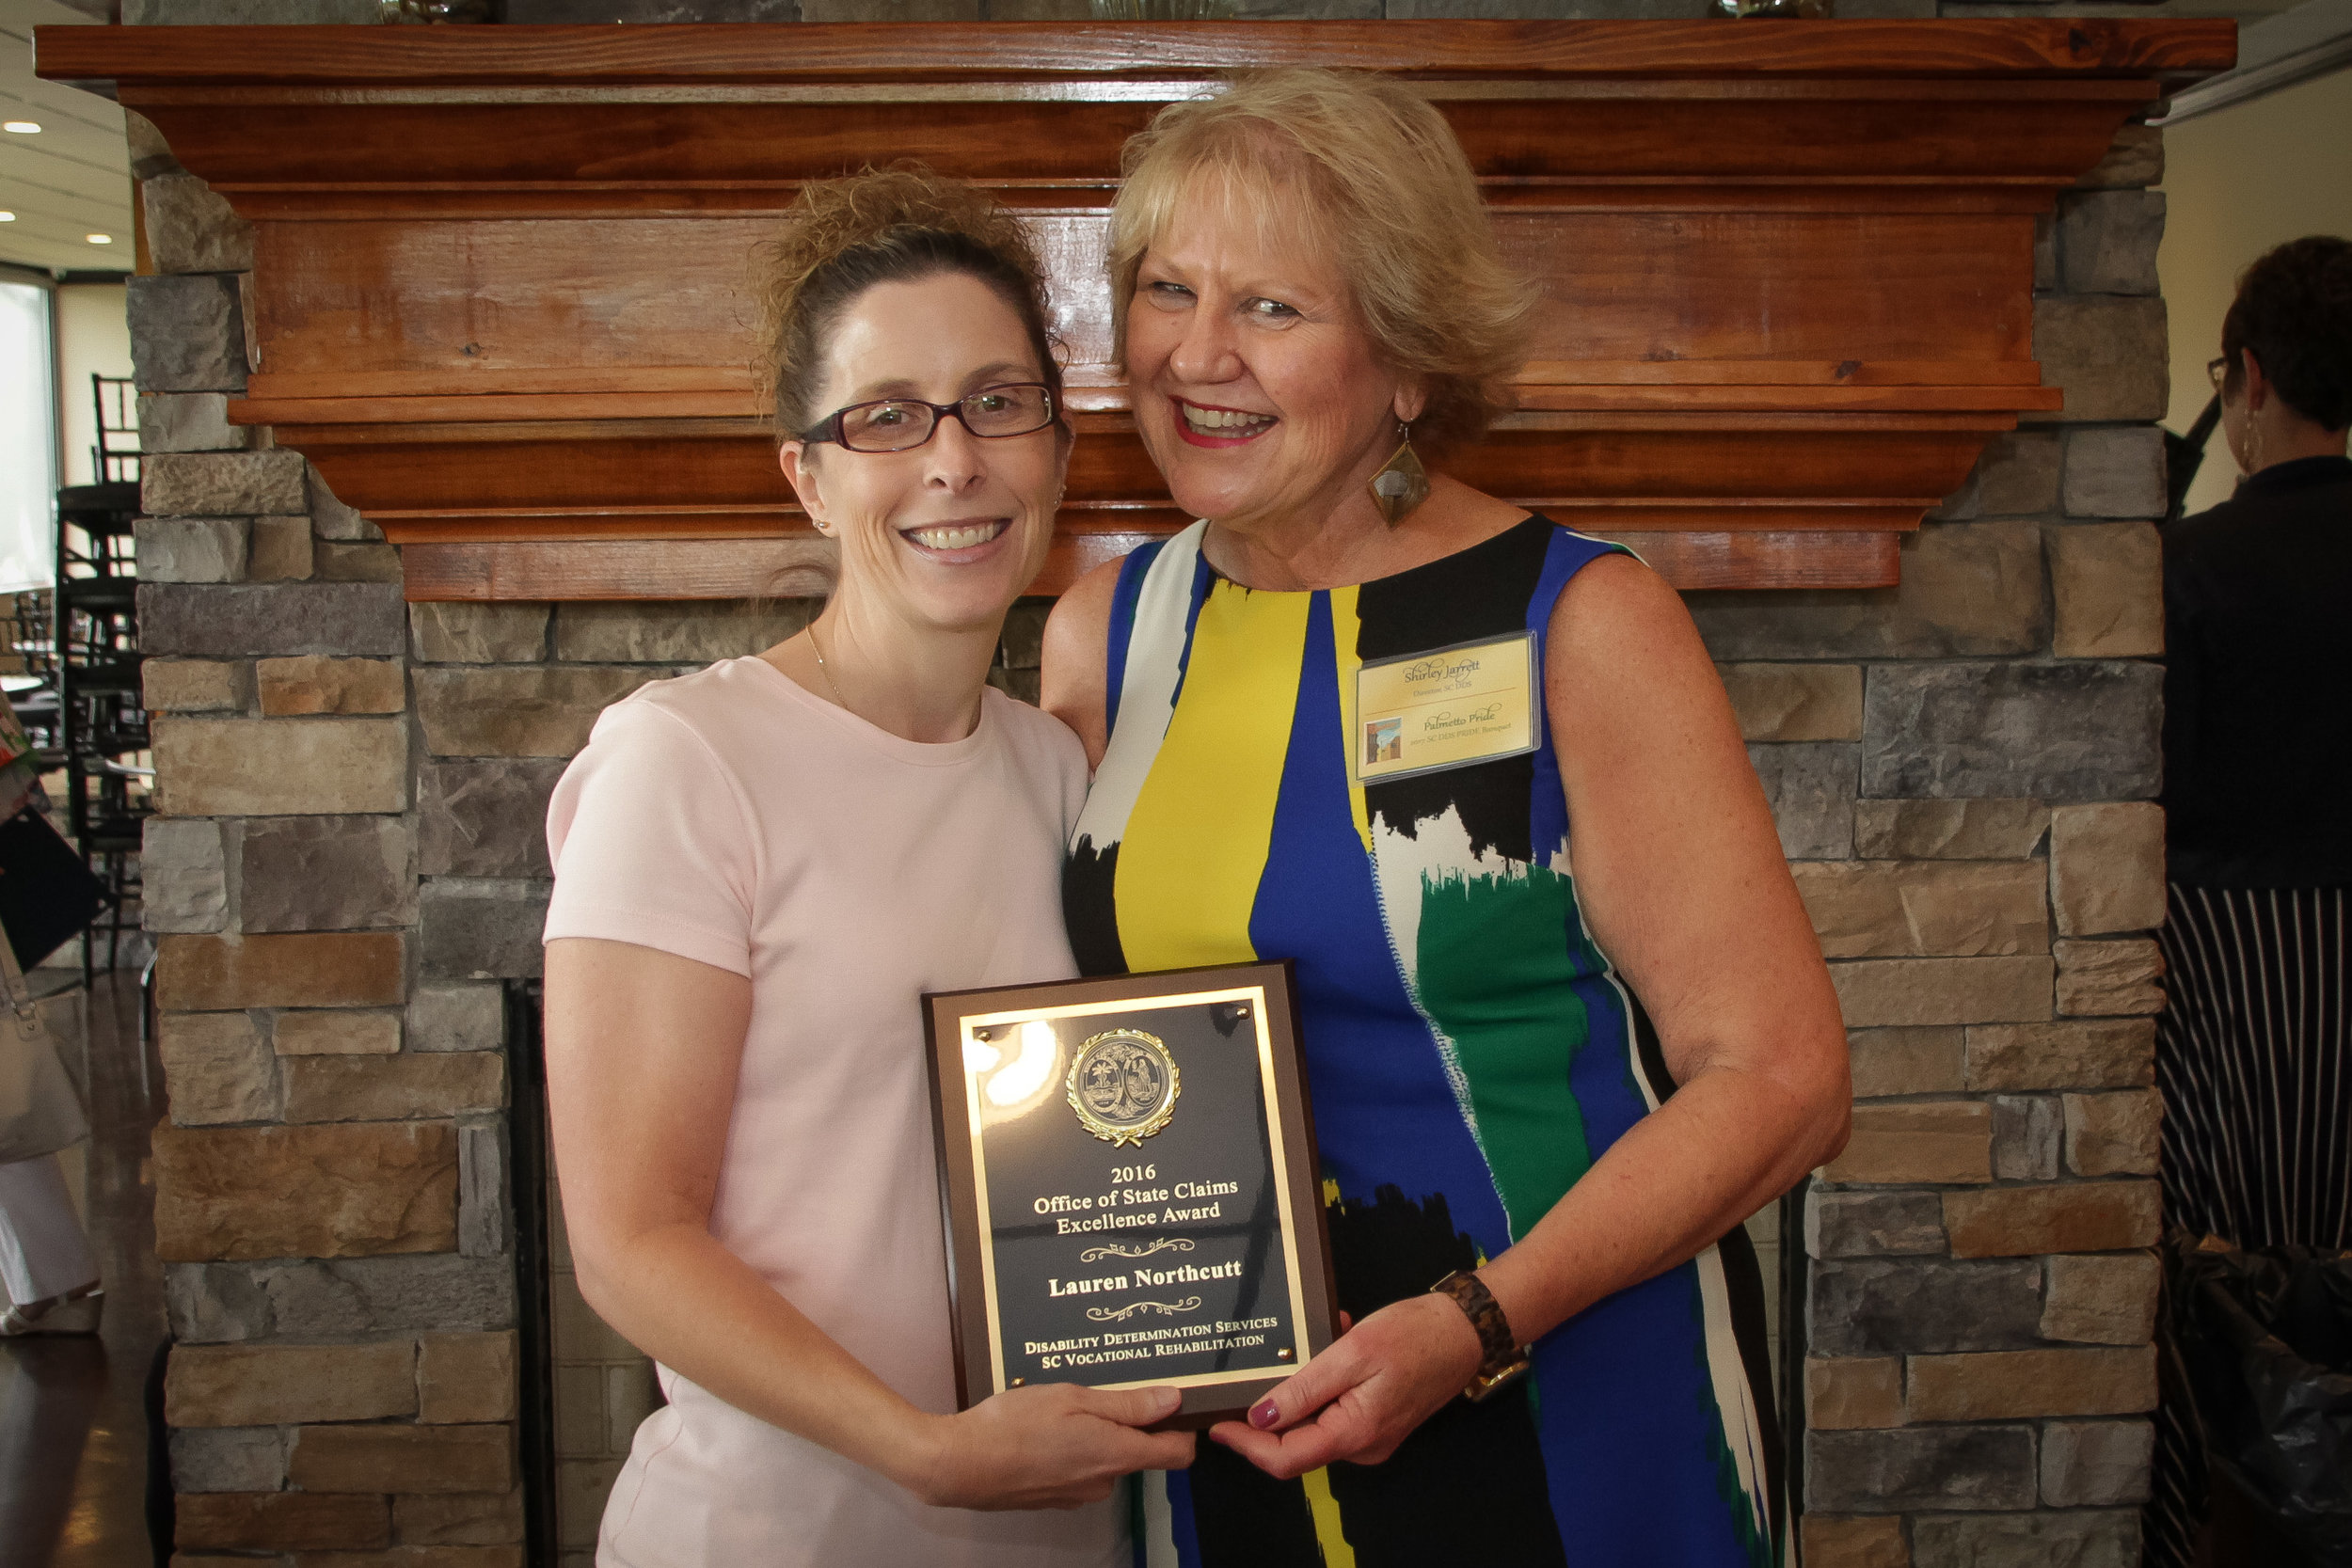 Office of State Claims Excellence Award  Lauren Northcutt - Columbia DDS Shirley Jarrett, Disability Determination Services (DDS) Director